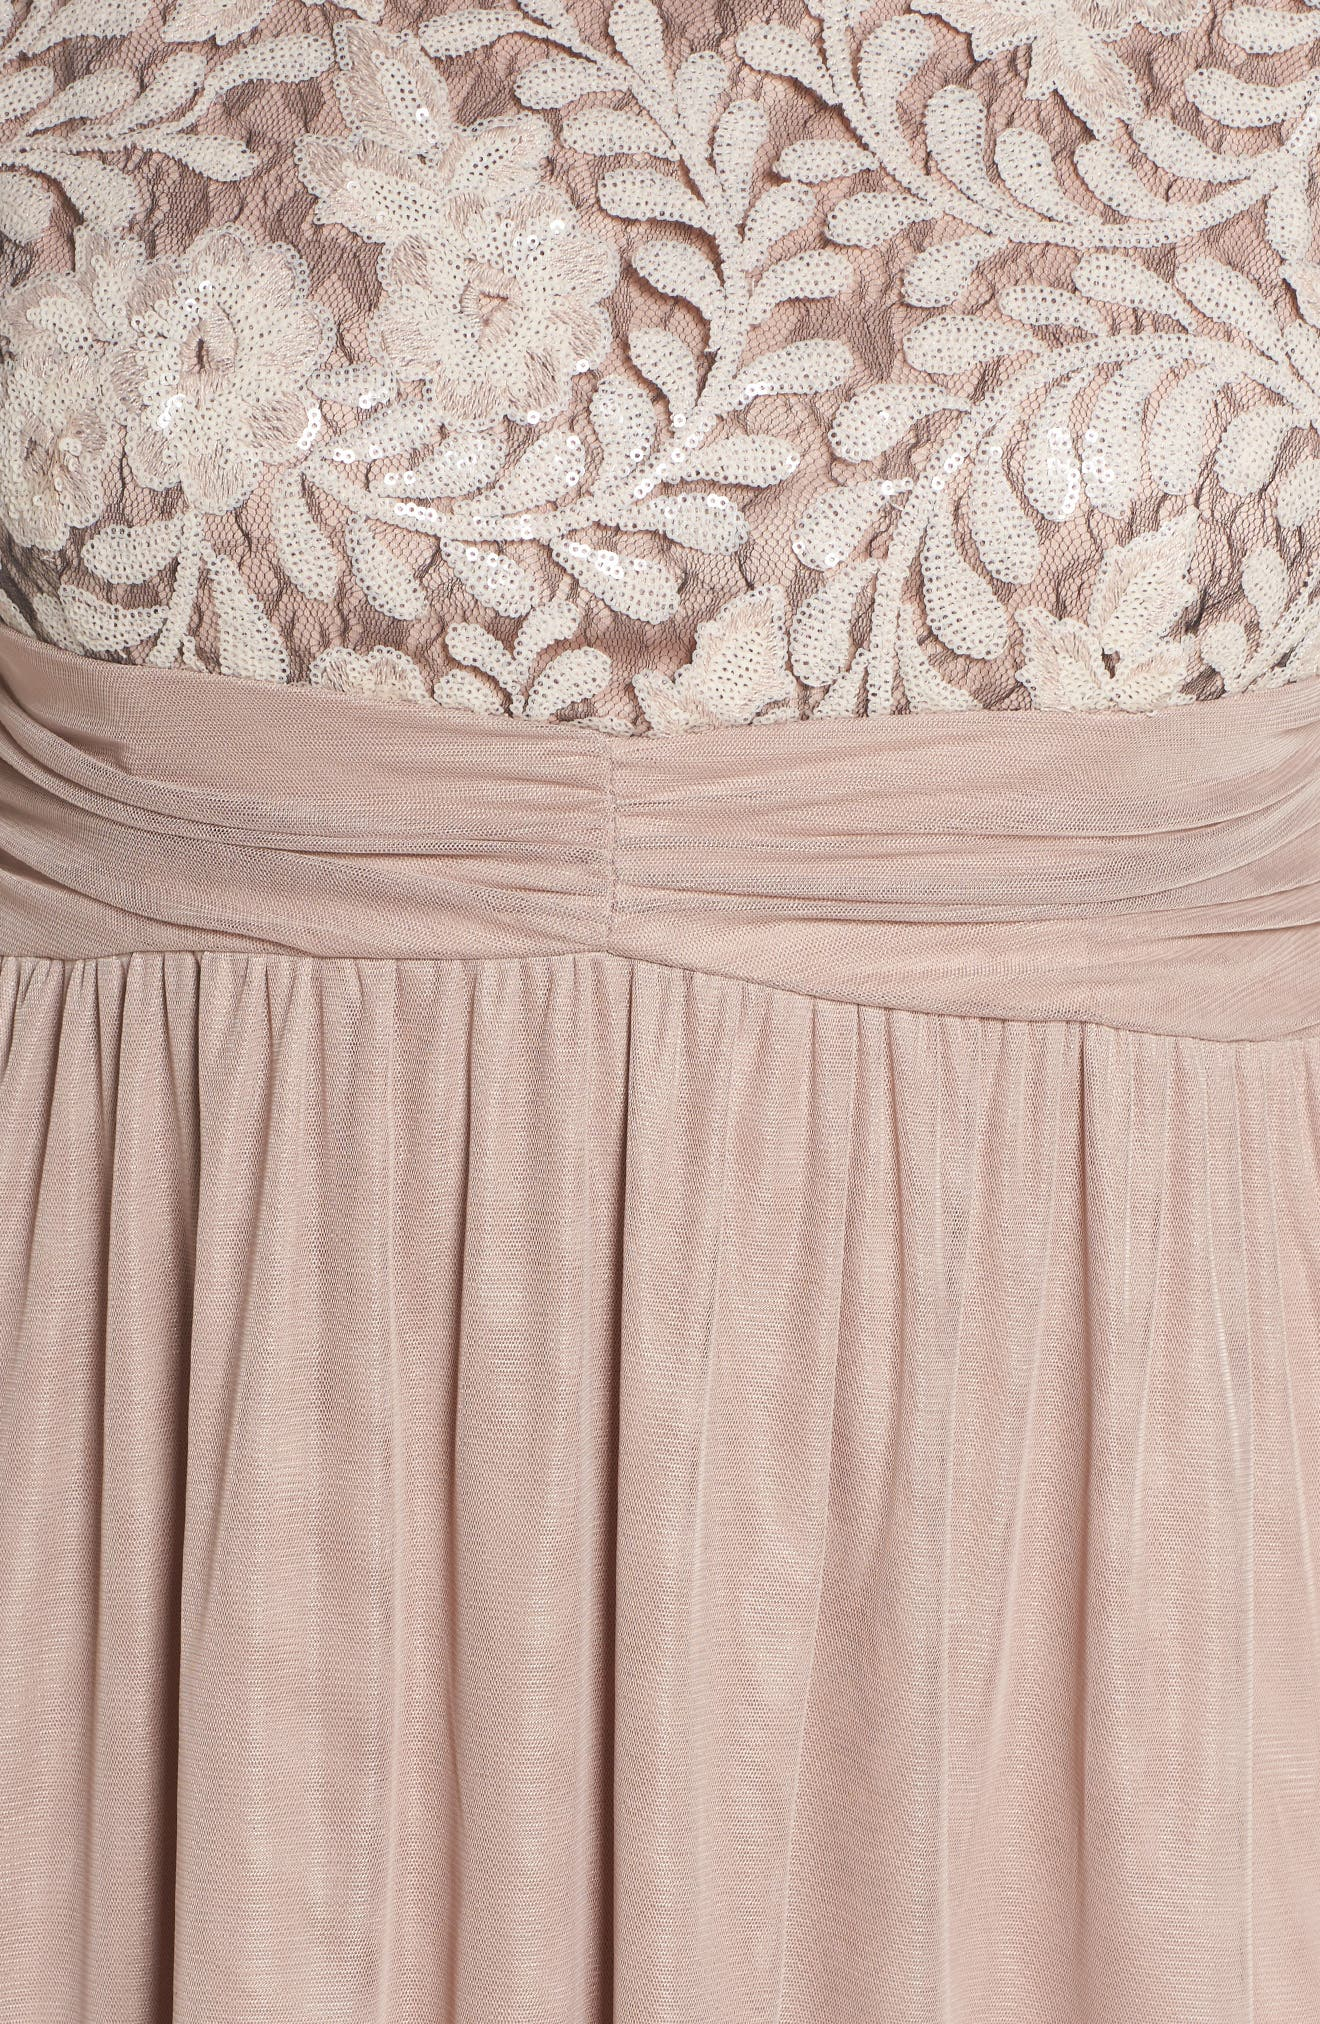 Embellished Cap Sleeve Gown,                             Alternate thumbnail 5, color,                             Champagne